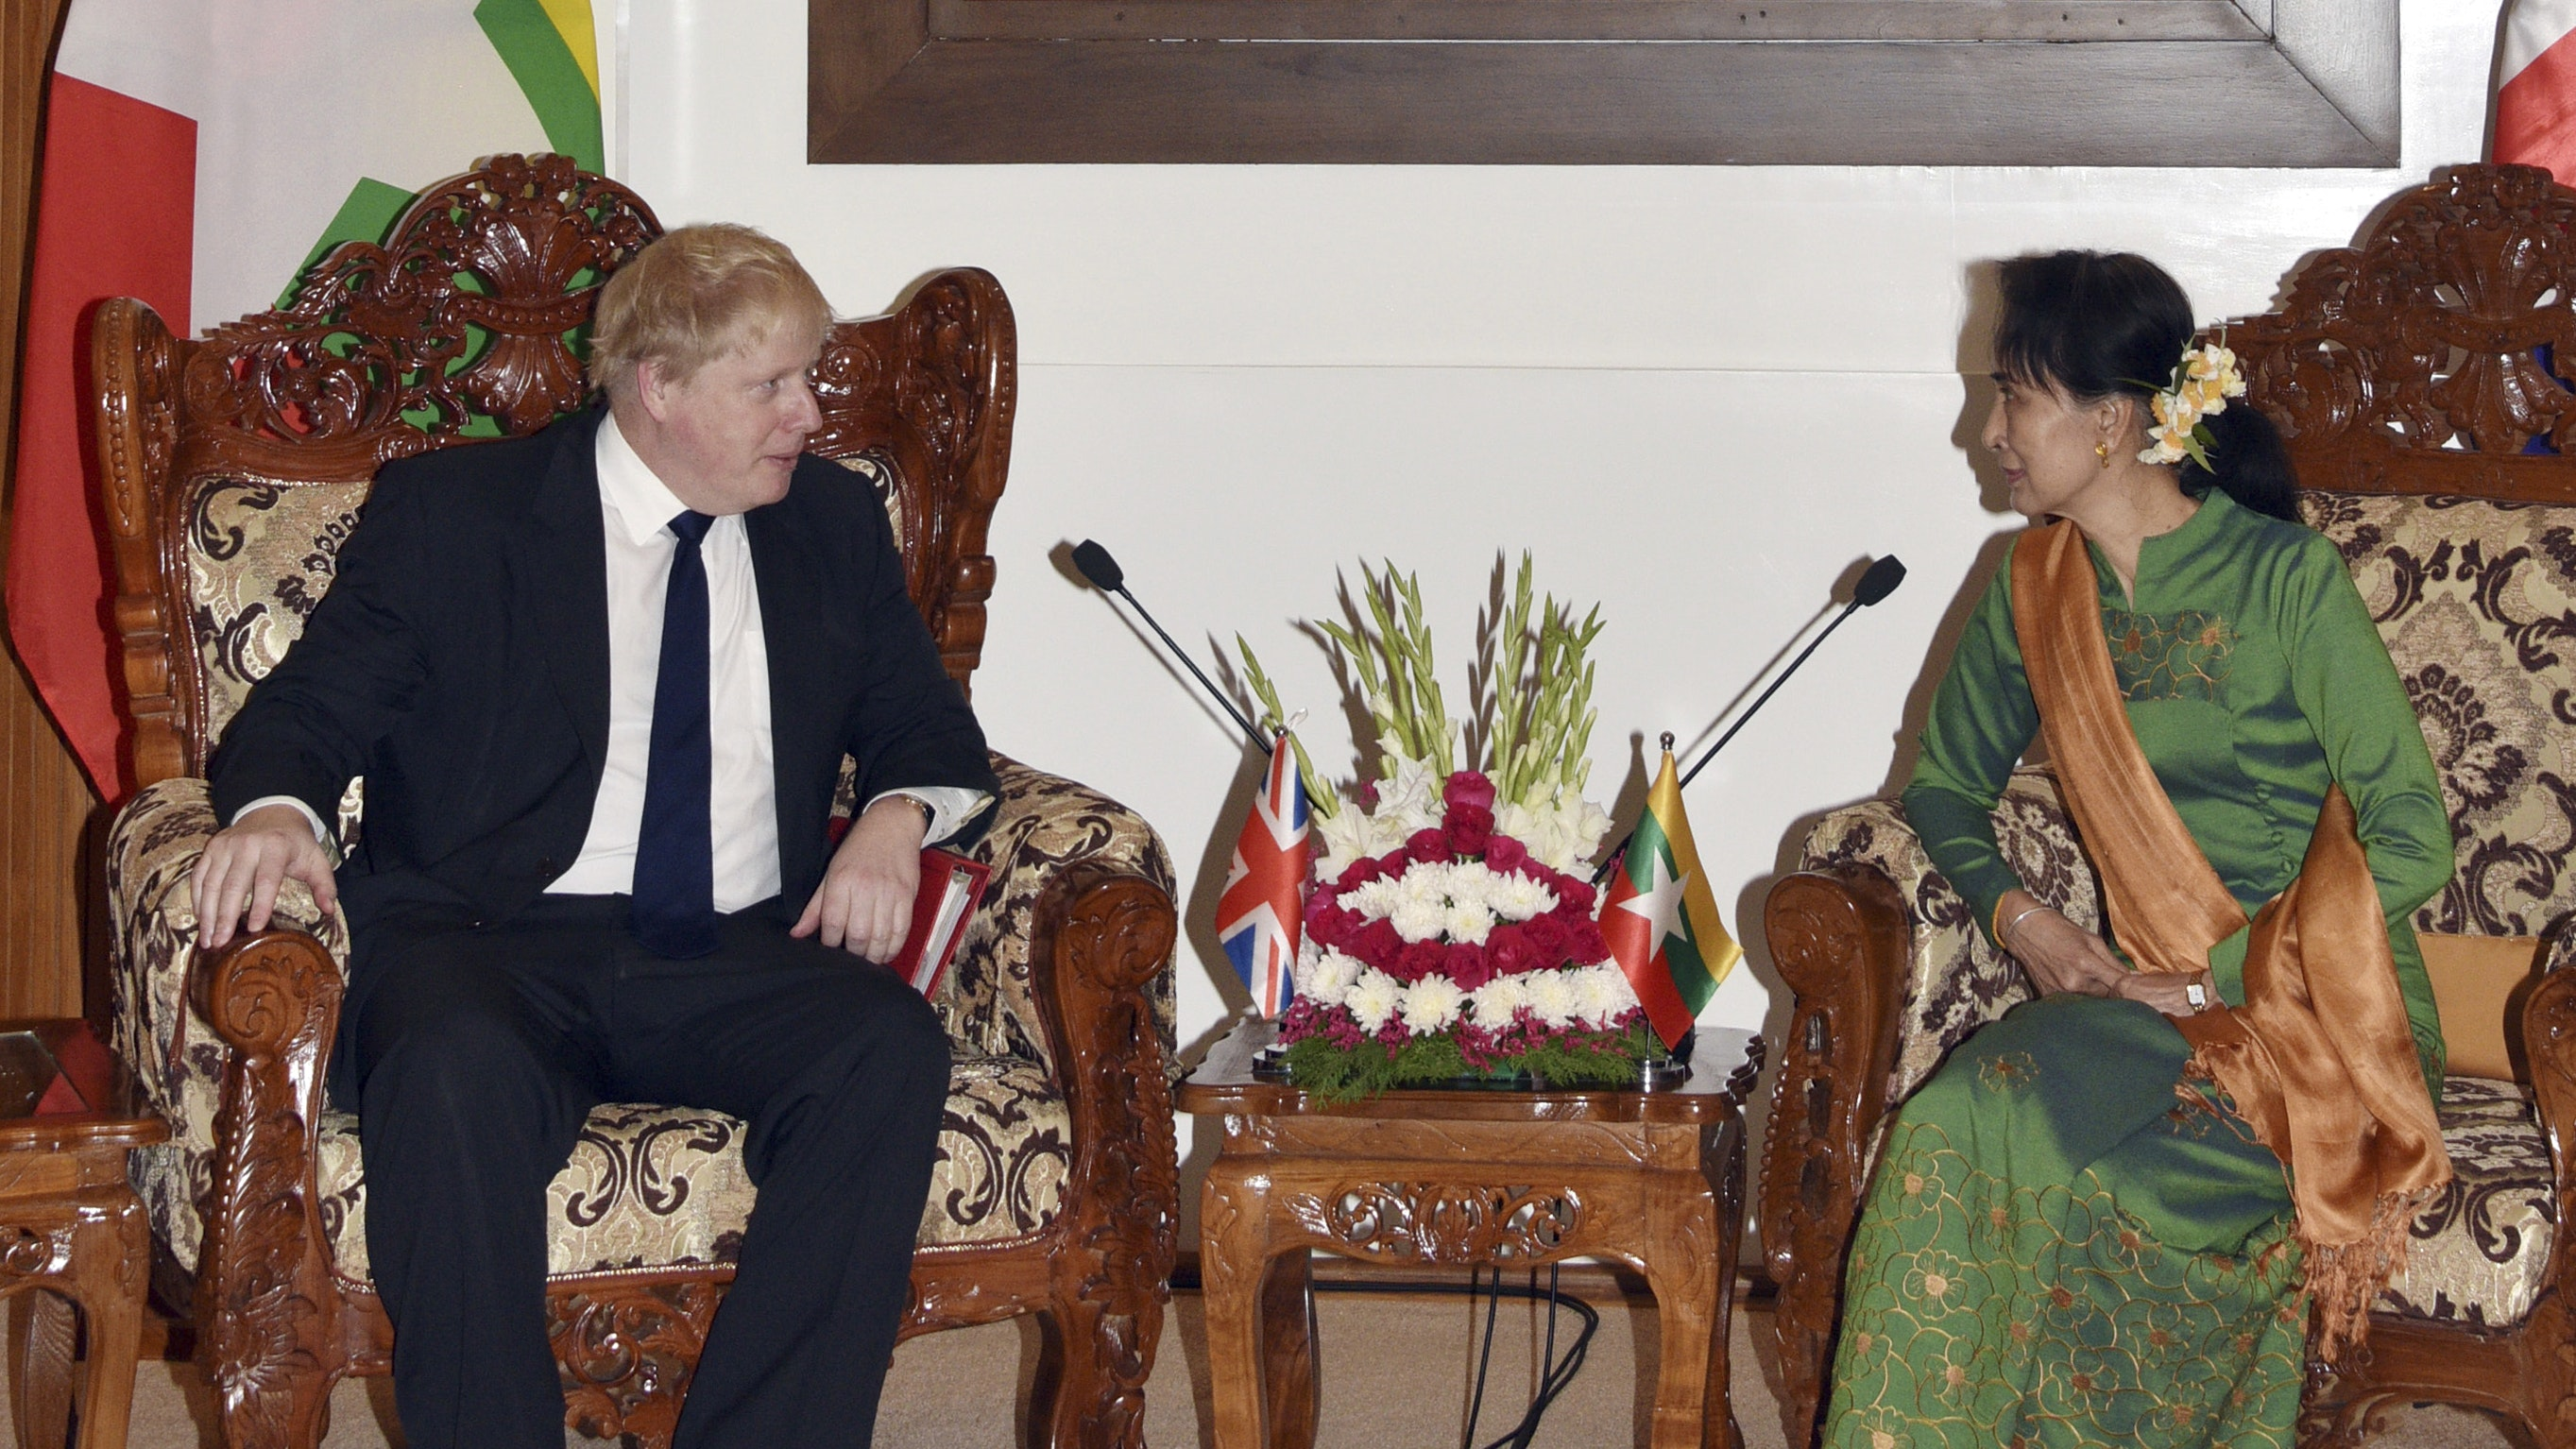 Boris Johnson doubts Aung San Suu Kyi understands 'horror' of Rohingya crisis